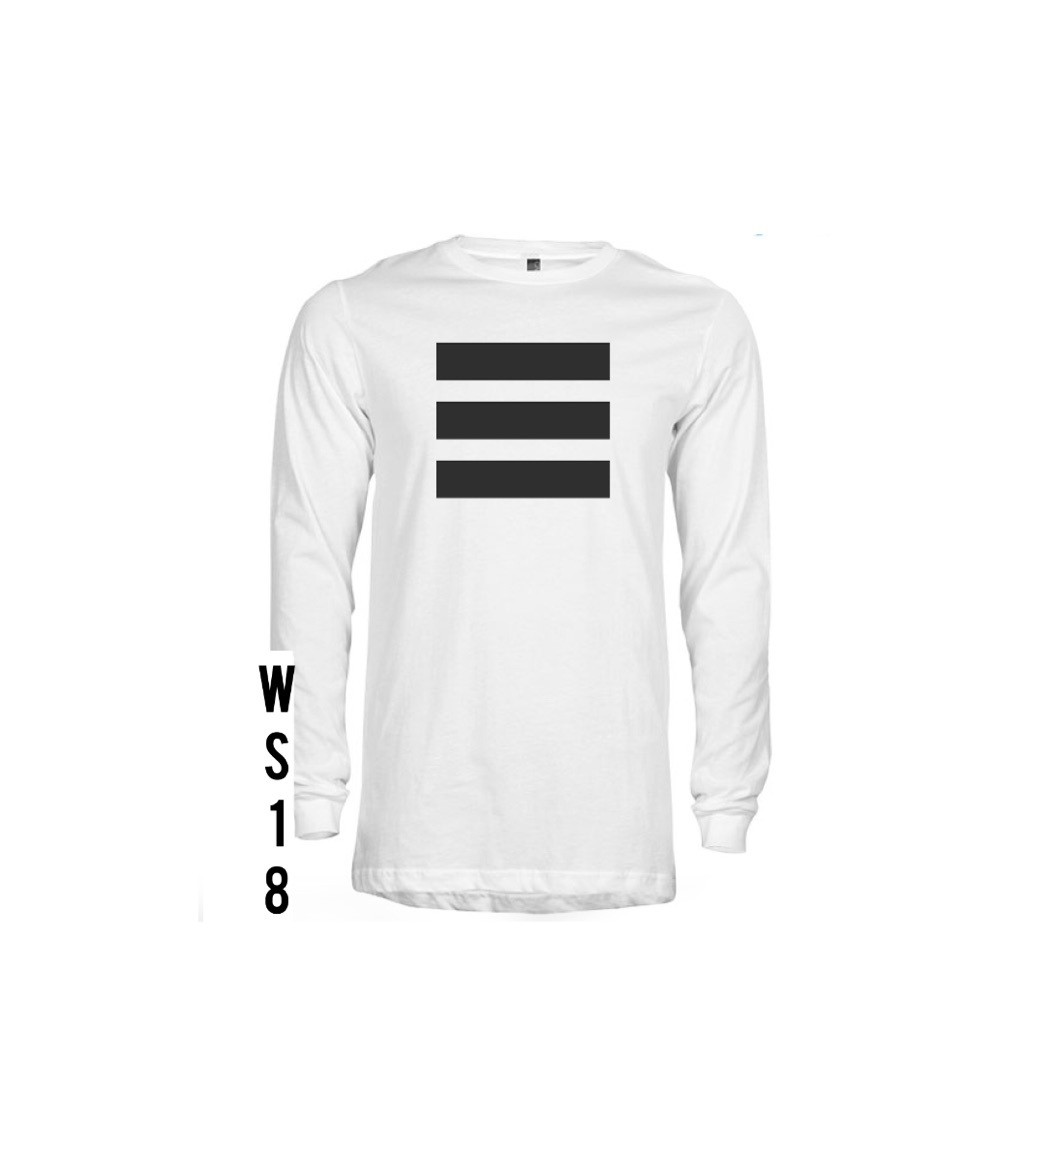 EARN YOUR STRIPES LONG SLEEVE